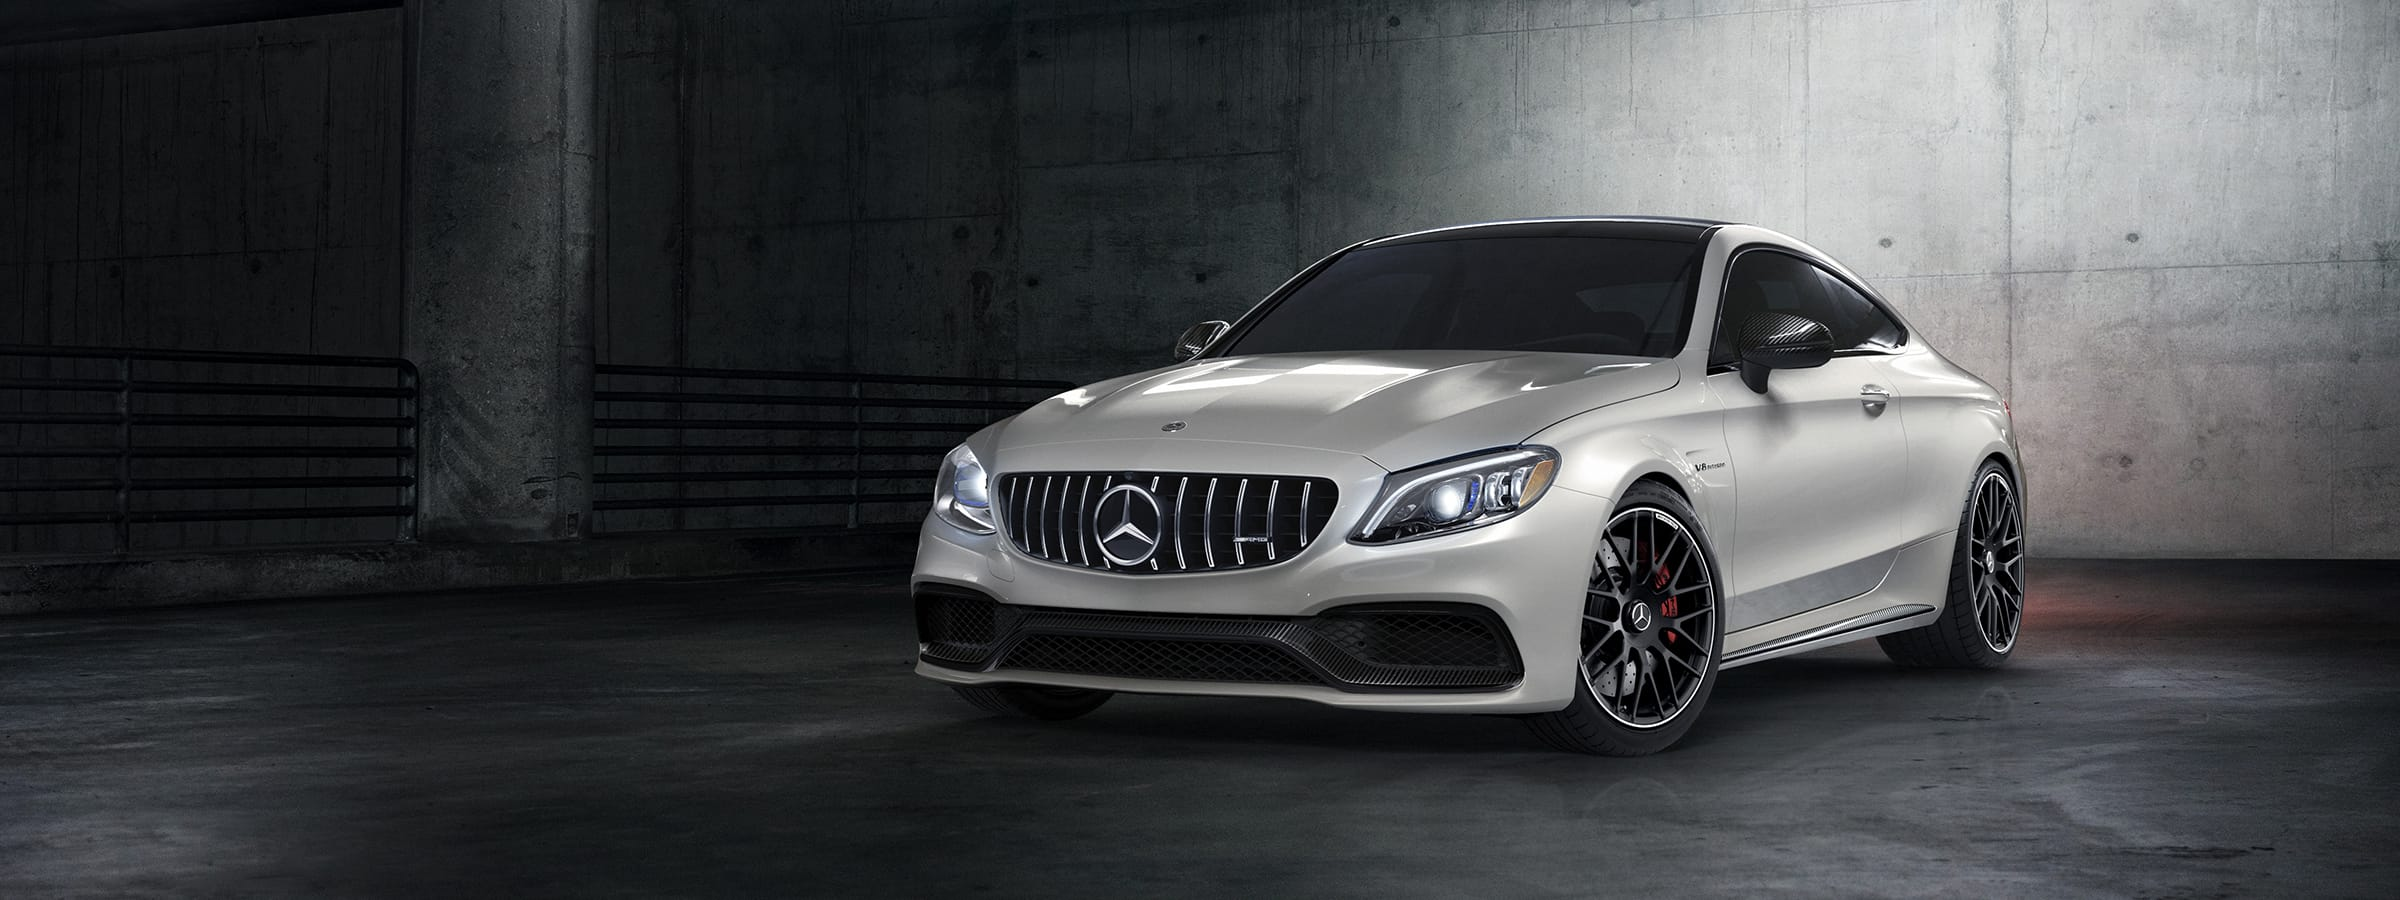 2019 Mercedes-AMG C-Class Coupe